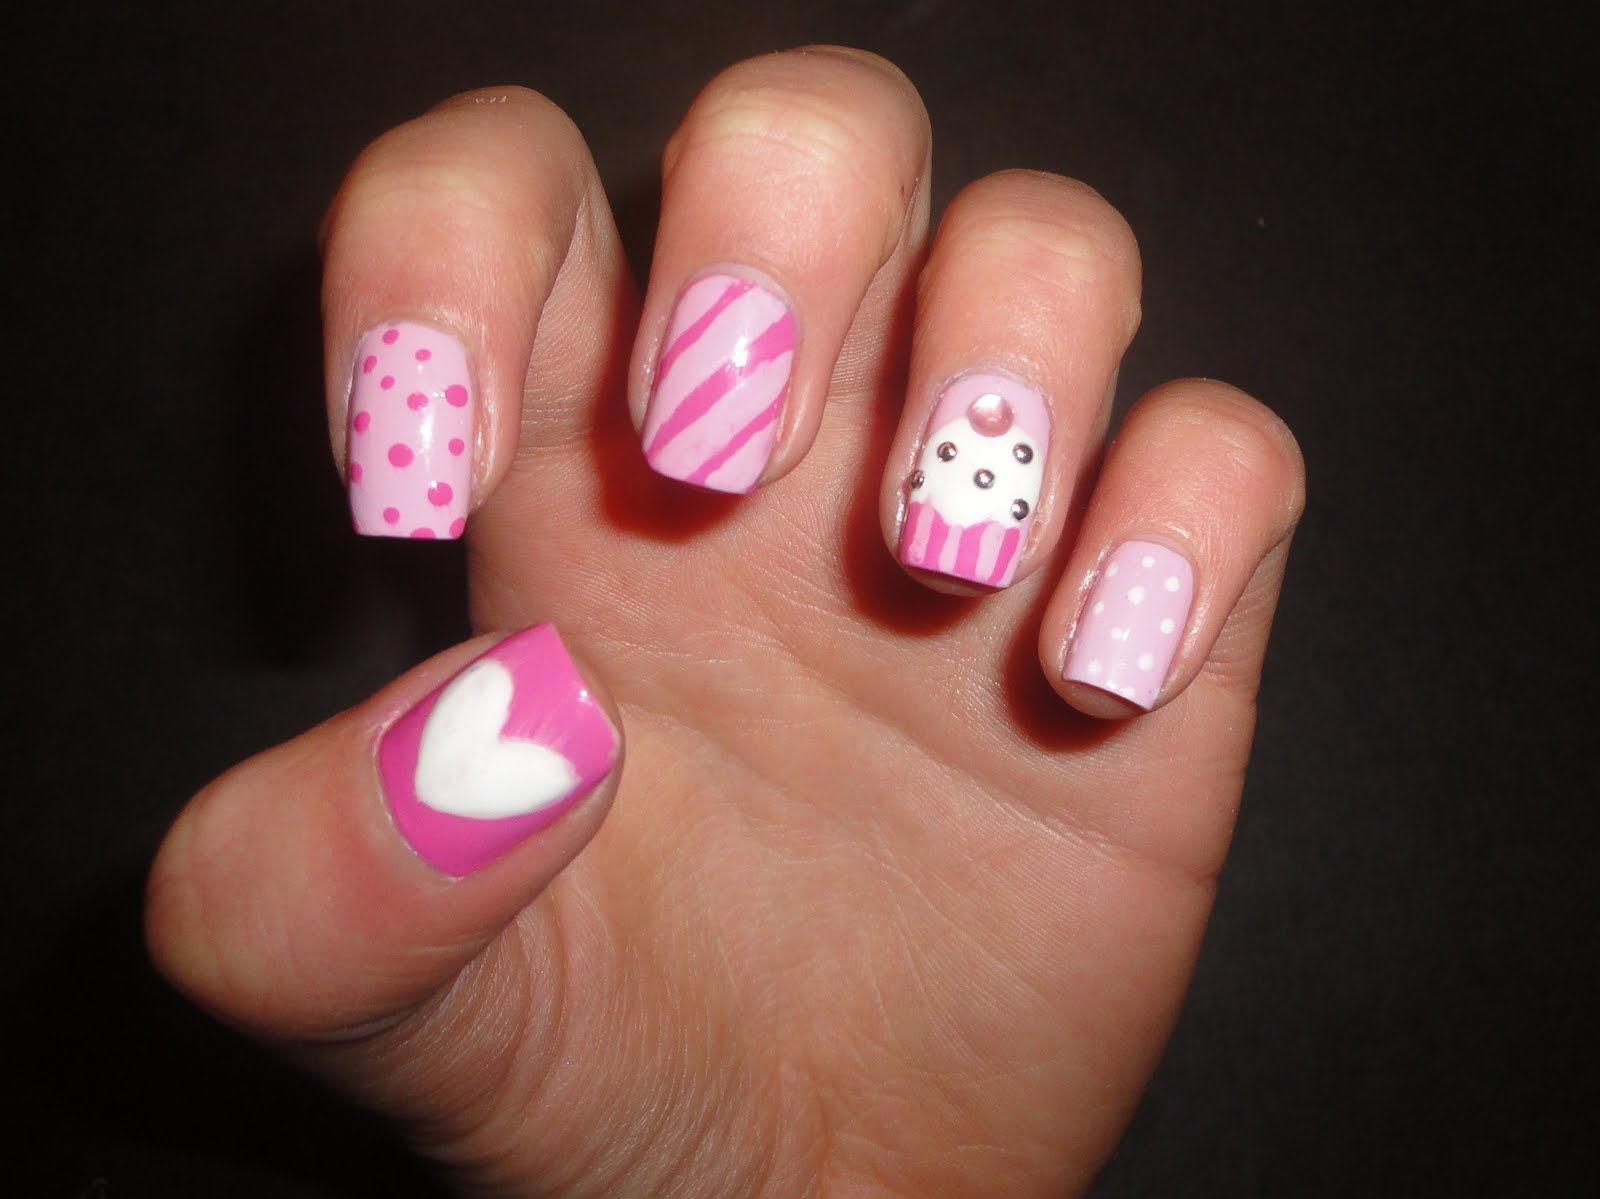 yummy creamy and delicious pink white candies and cupcakes on nails